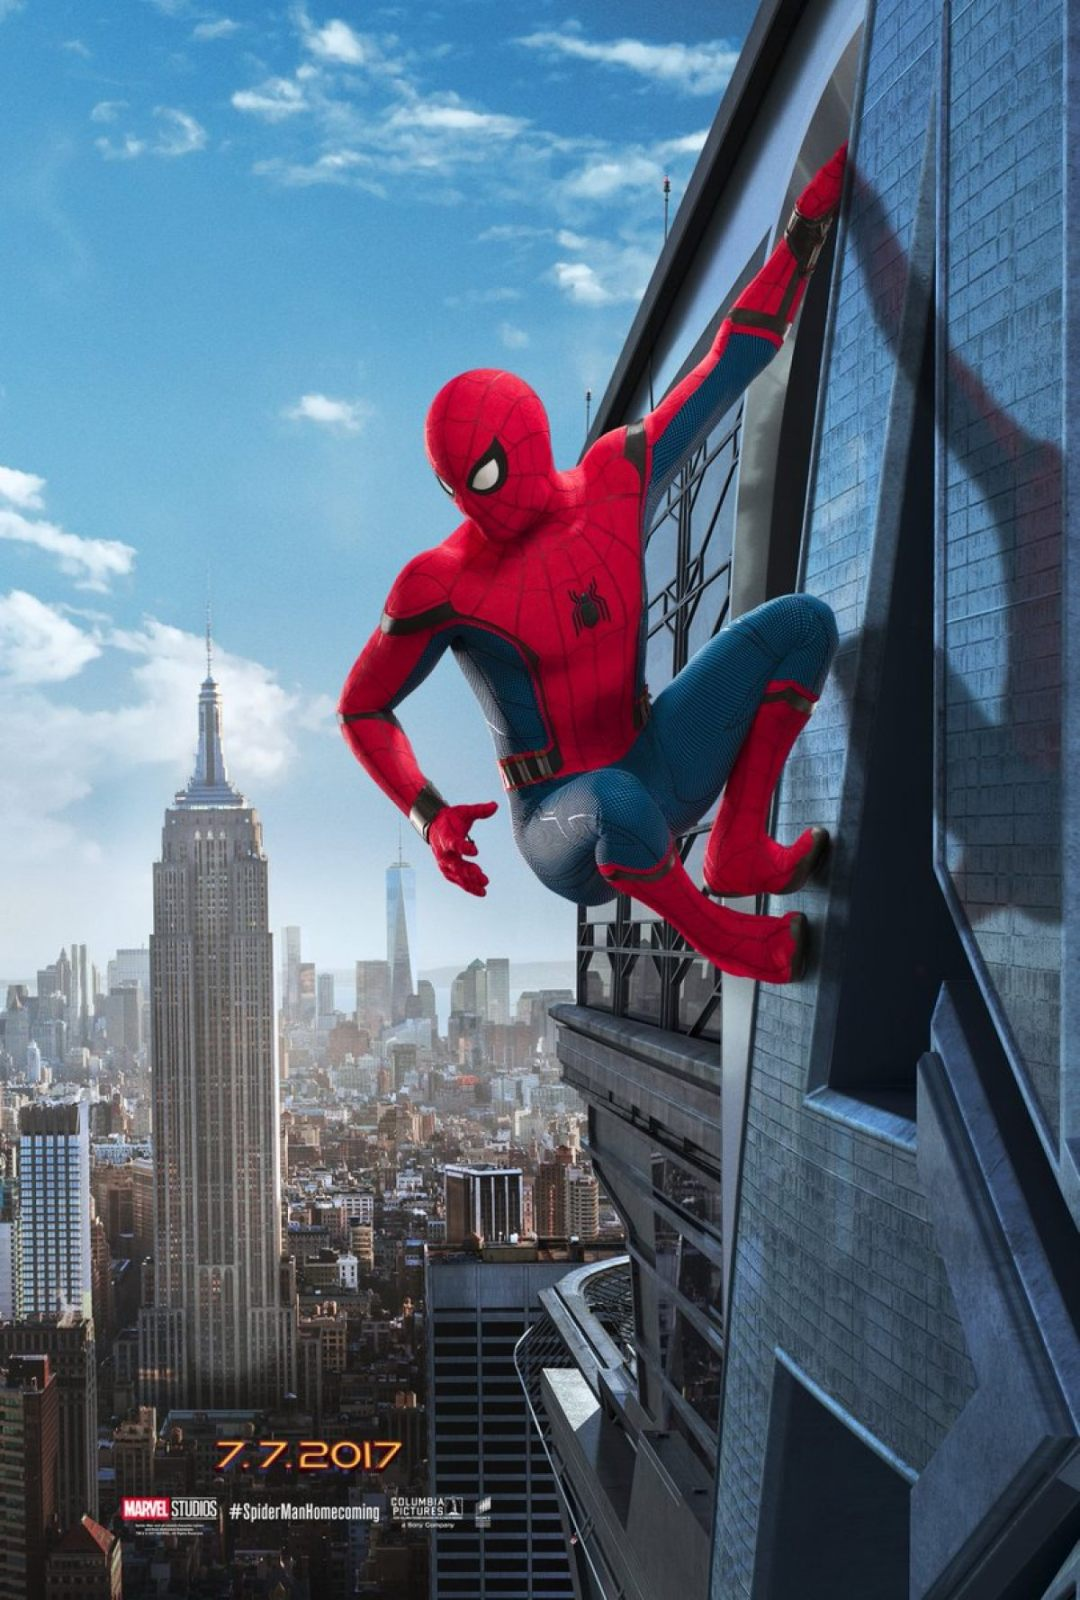 Spider-Man: Homecoming Poster 2